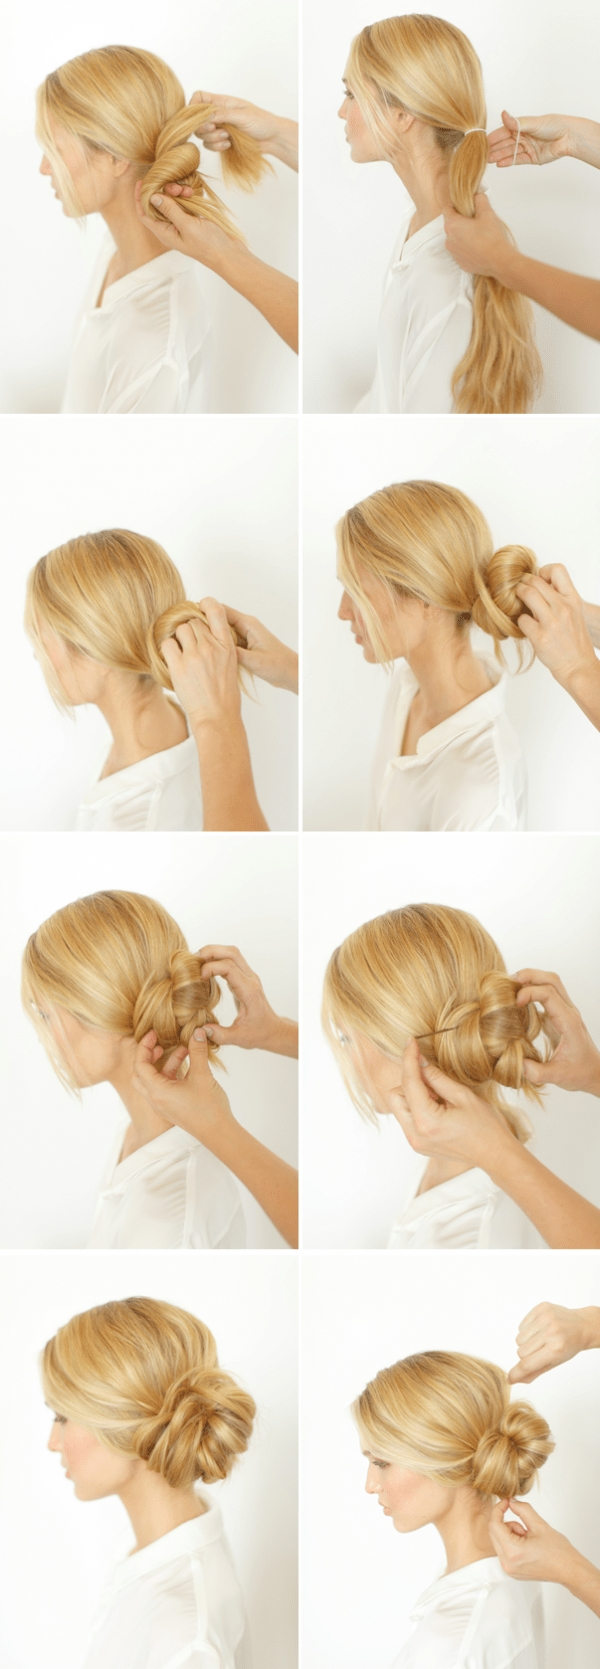 12 Easy Diy Hairstyles That Will Not Take You More Than 5 Minutes Throughout Best And Newest Wedding Hairstyles That You Can Do Yourself (View 10 of 15)